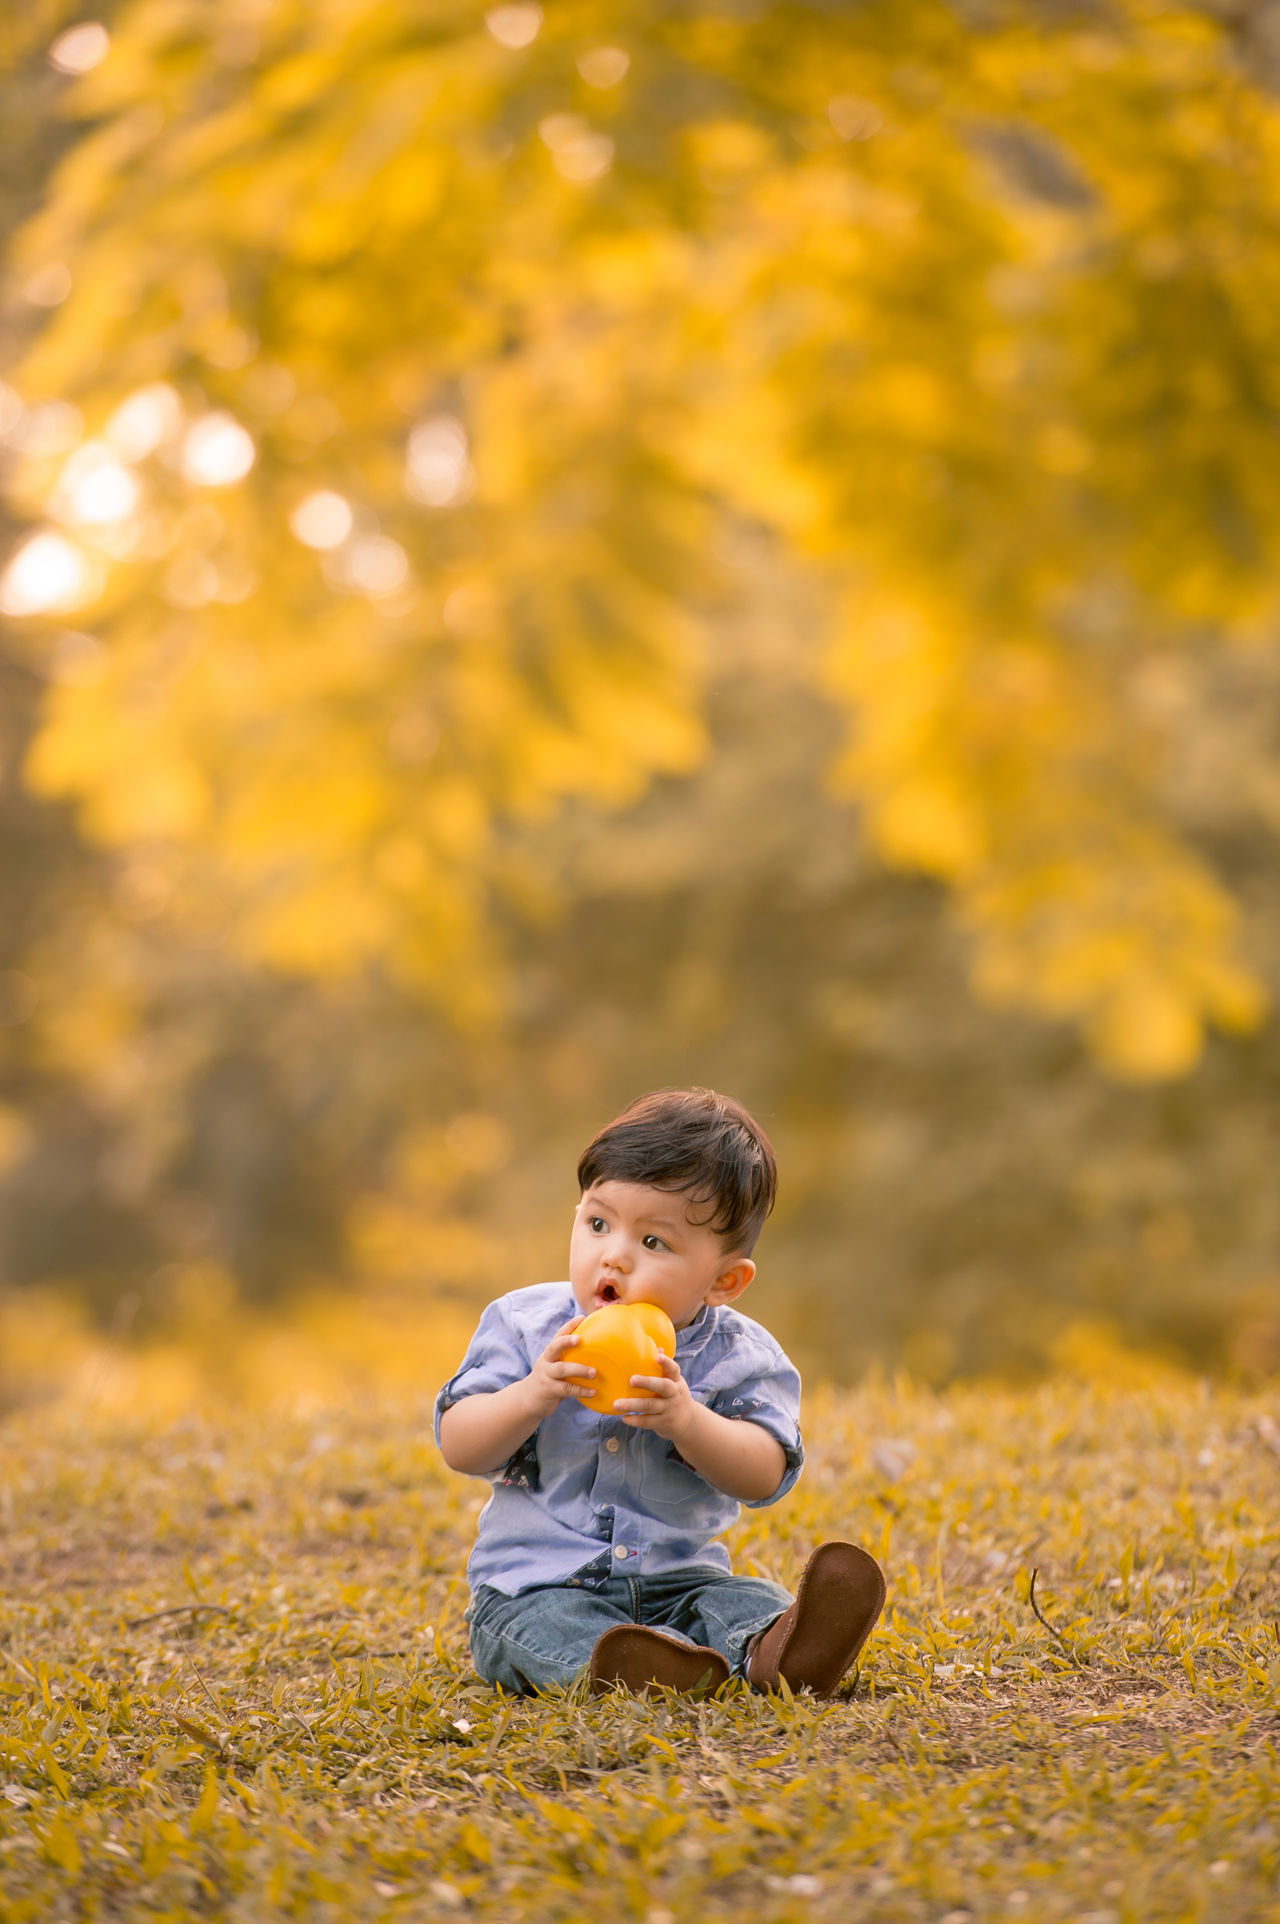 Chinese Boy ASIA Asian  Asian Family Autumn Beauty In Nature Boys Casual Clothing Change Childhood Chinese Day Eating Food Full Length Leaf Leisure Activity Lifestyles Nature One Person Outdoors Real People Sitting Tree Yellow Young Women